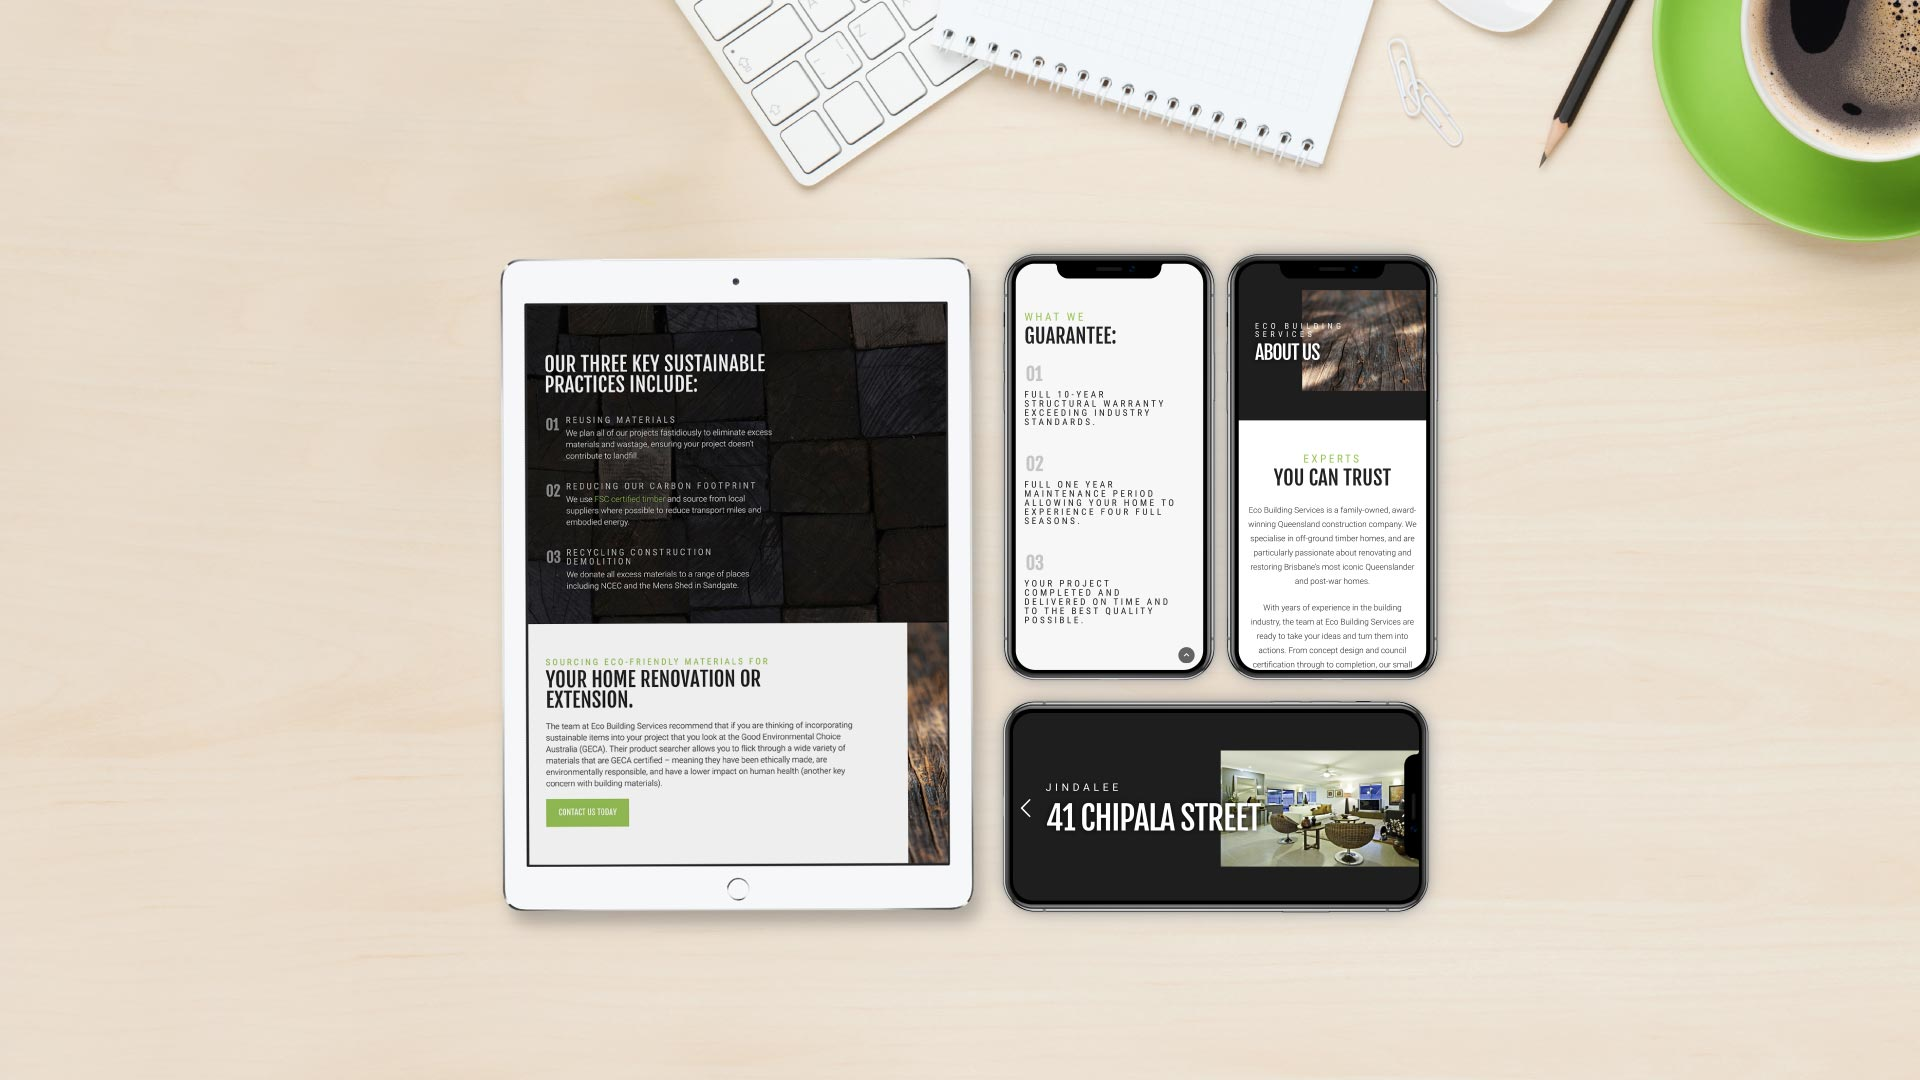 ronin-digital-marketing-brisbane-responsive-website-design-eco-building-services-responsive-set